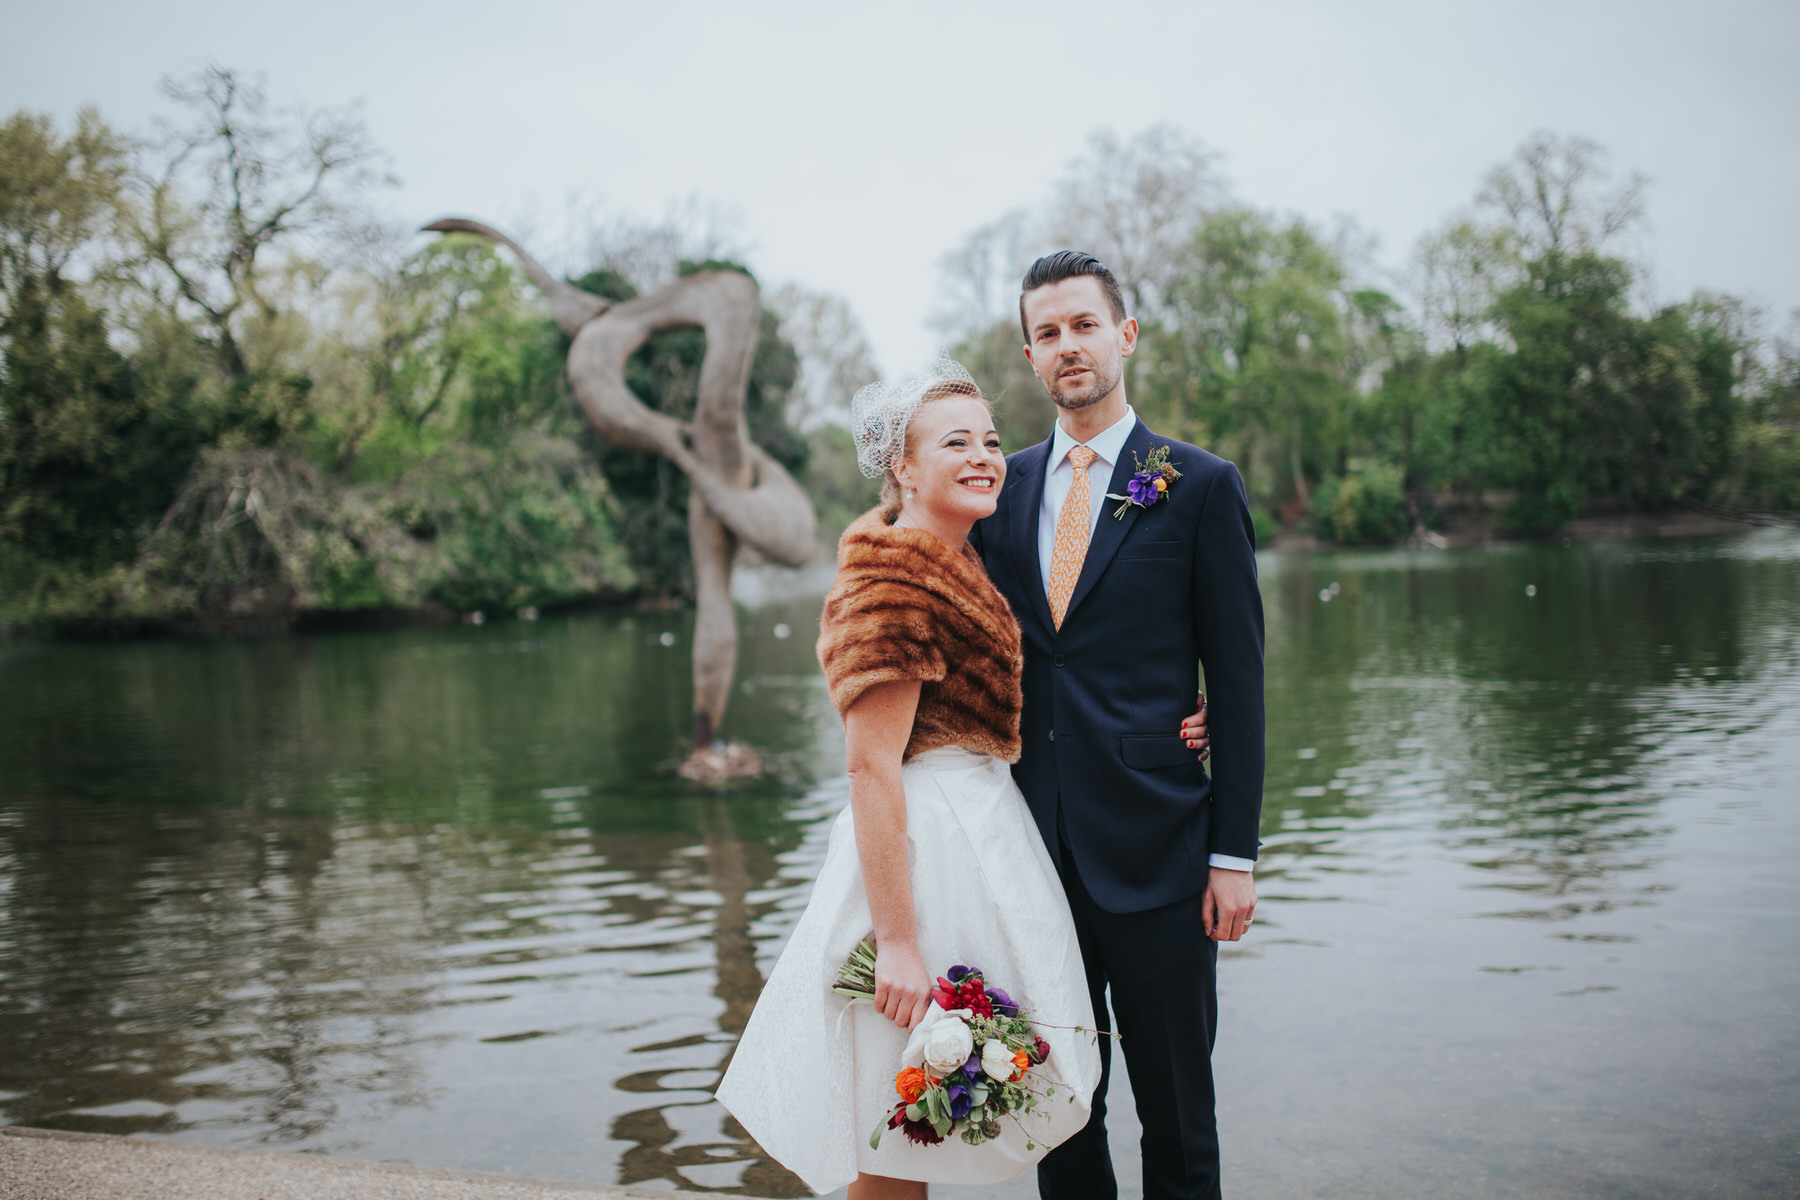 MS-Londesborough-Pub-wedding-Hackney-alternative-photographer-154-just-married-quirky-bride-groom-lake-Victoria-Park.jpg